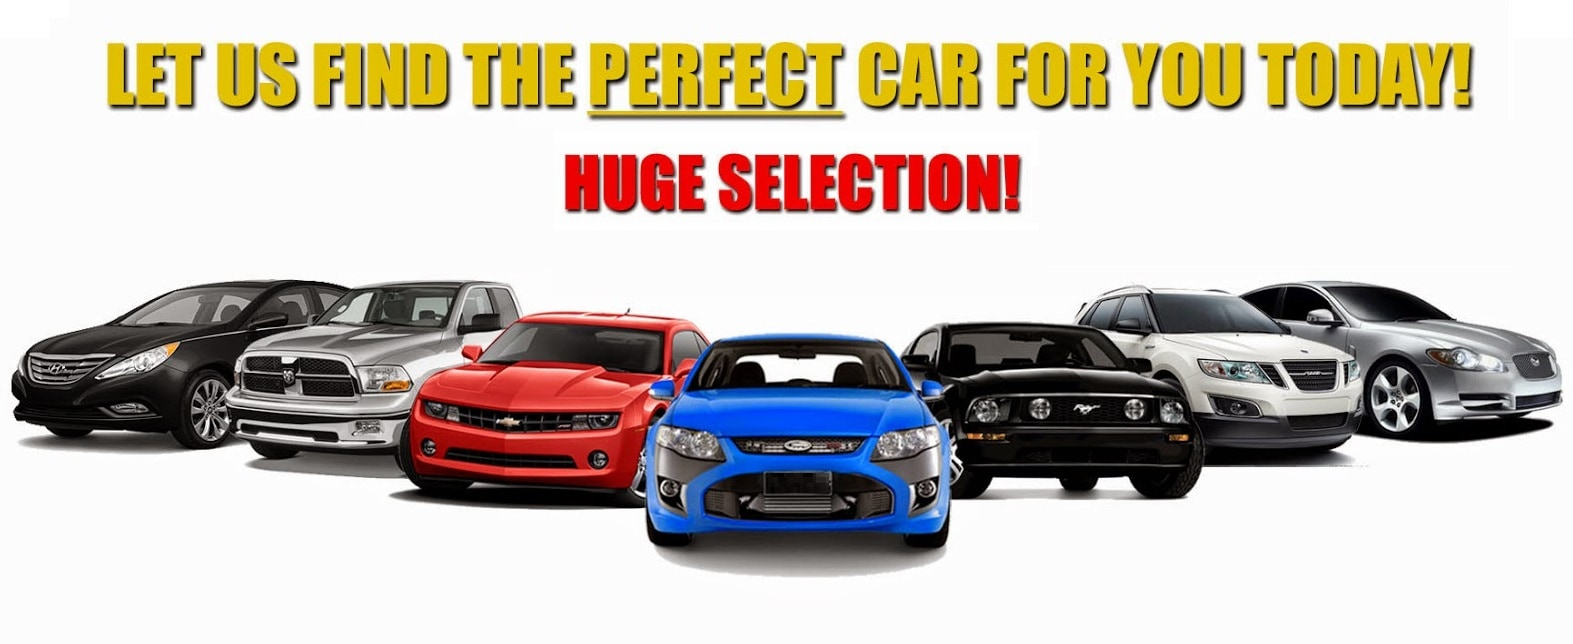 Best Of Cheap Old Cars For Sale Near Me: Local Used Car Website With Huge Selection